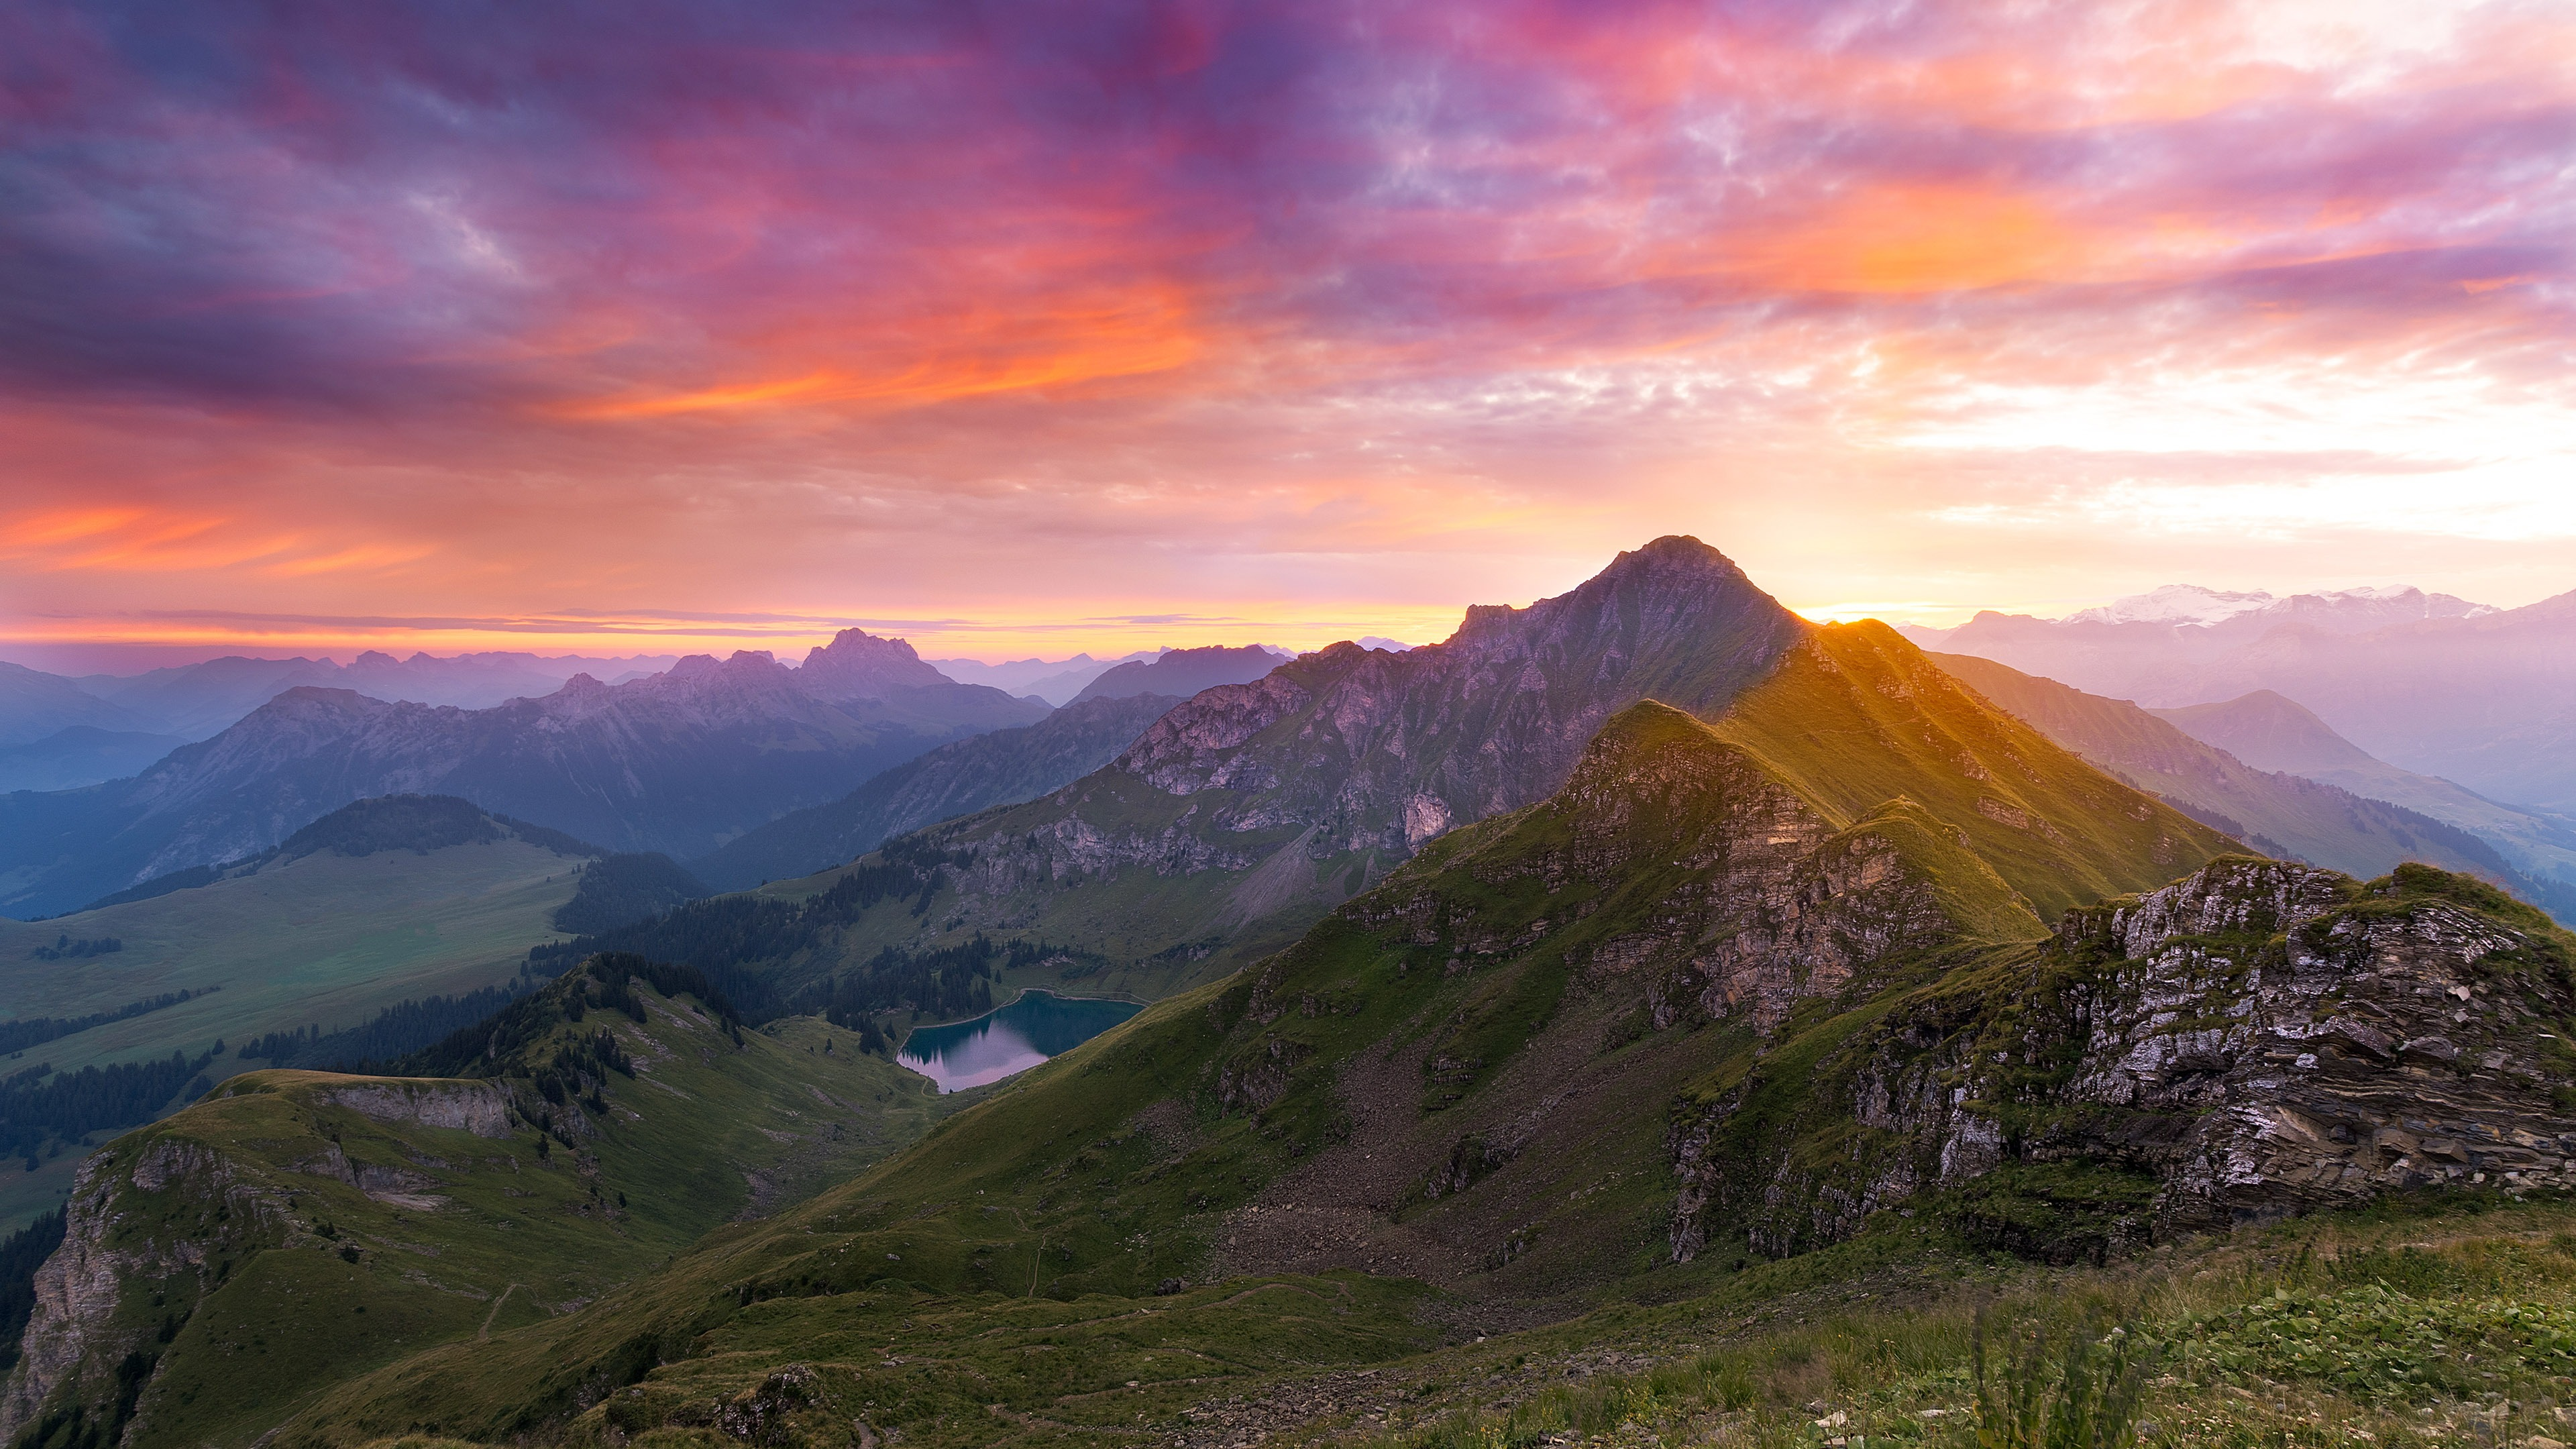 Mountains Sunset Nature Scenery Wallpaper 3840x2160